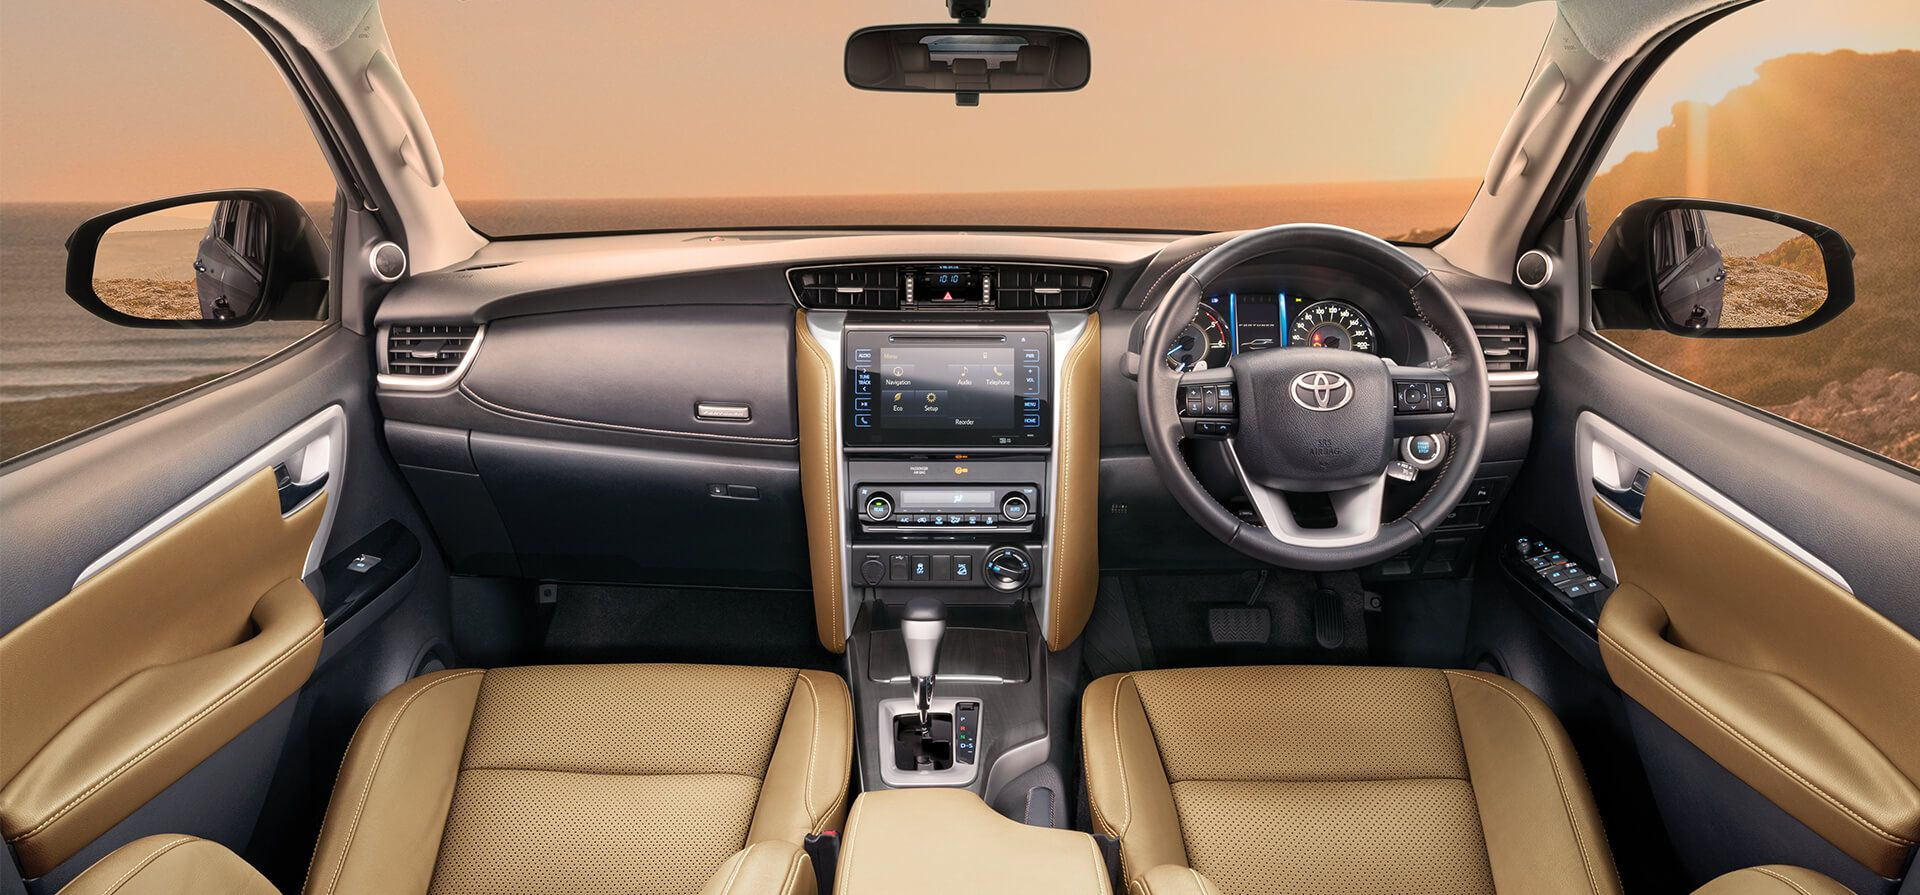 Pin On Images Of Toyota Fortuner